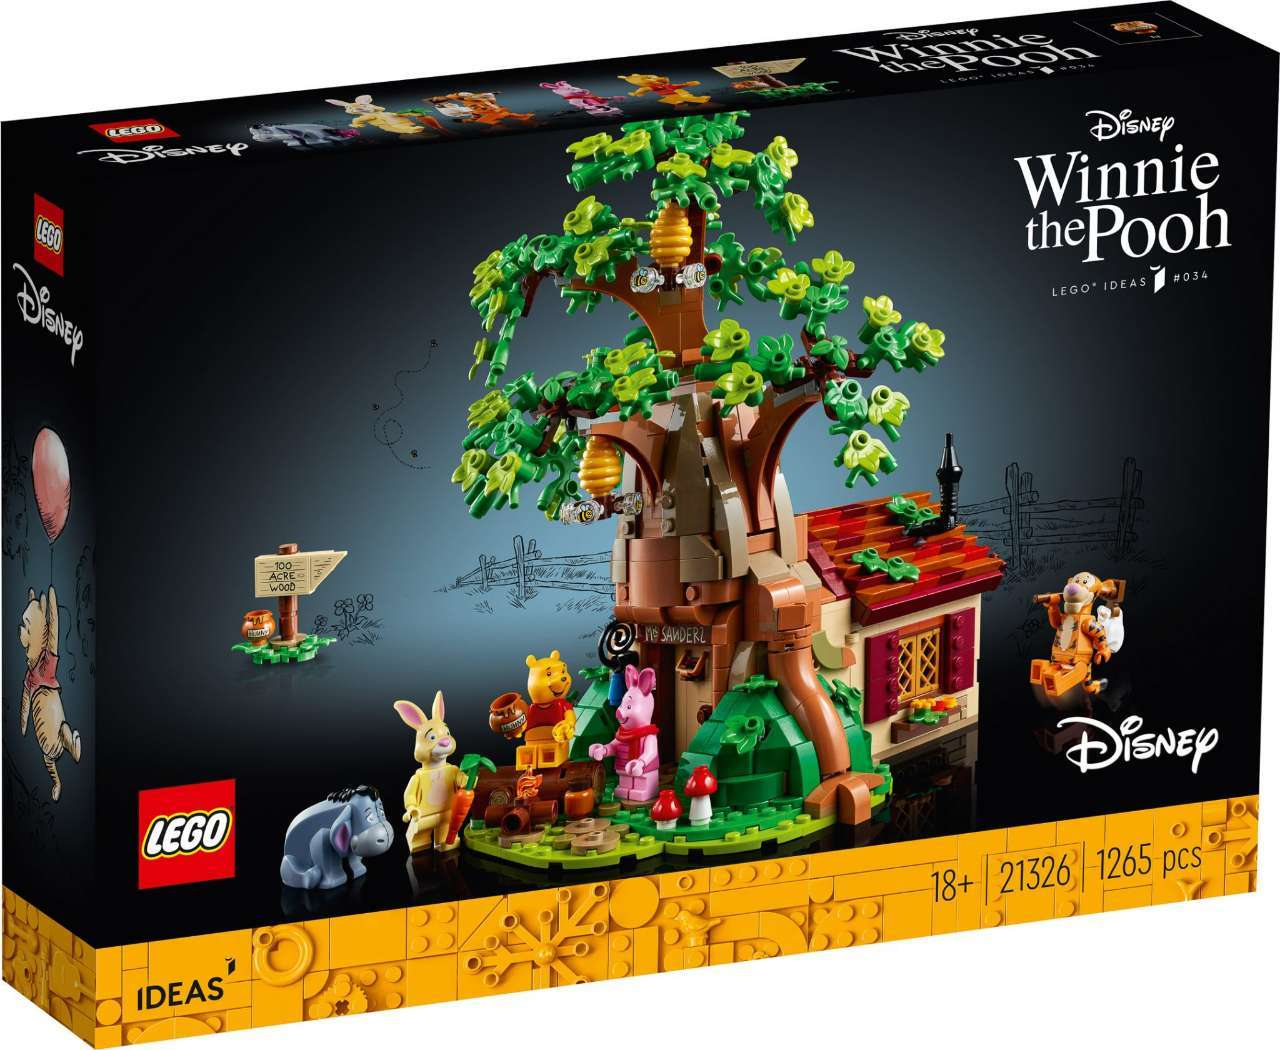 Hundred Acre Wood-Sized Winnie the Pooh LEGO Set Soon Launching